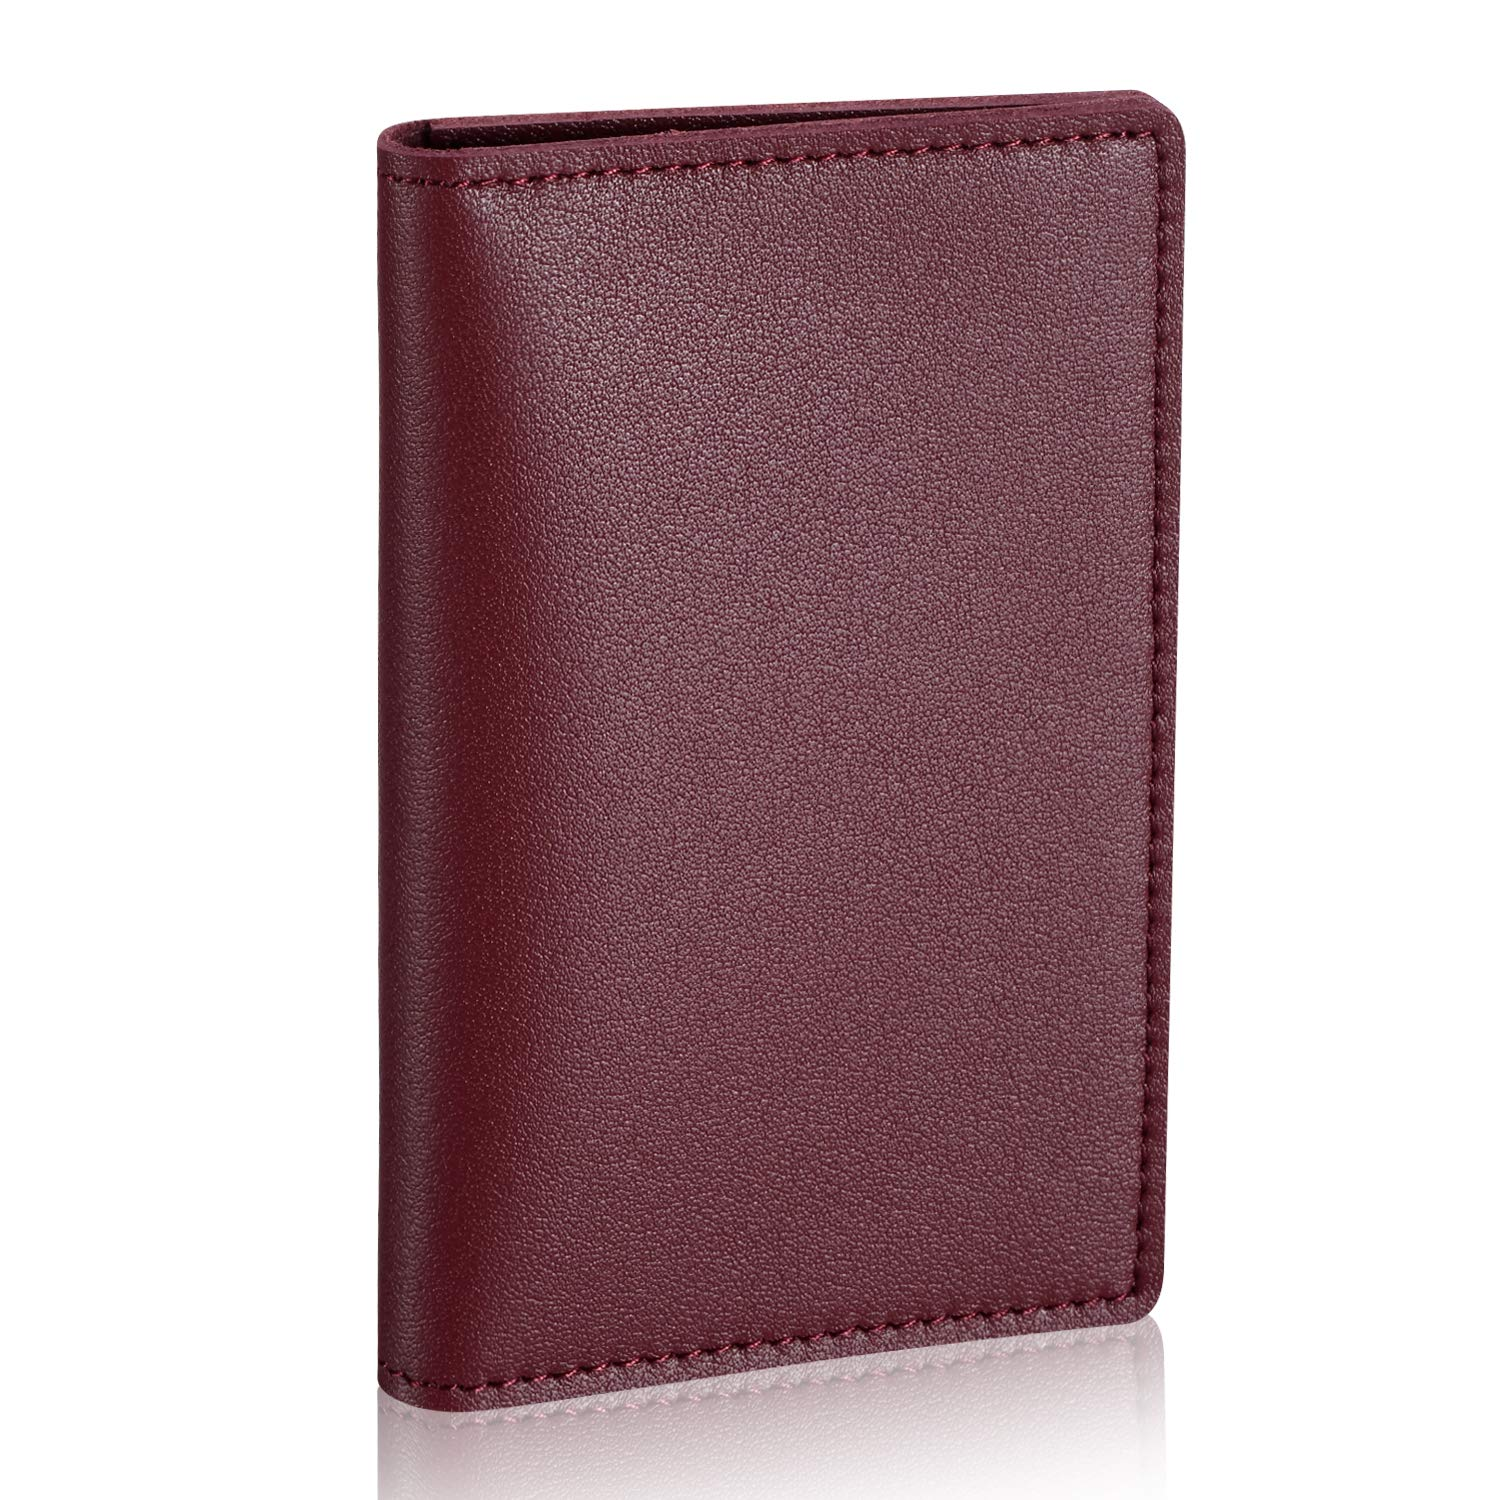 HISCOW Minimalist Thin Bifold Card Holder - Italian Calfskin (Bordeaux) by HISCOW (Image #9)